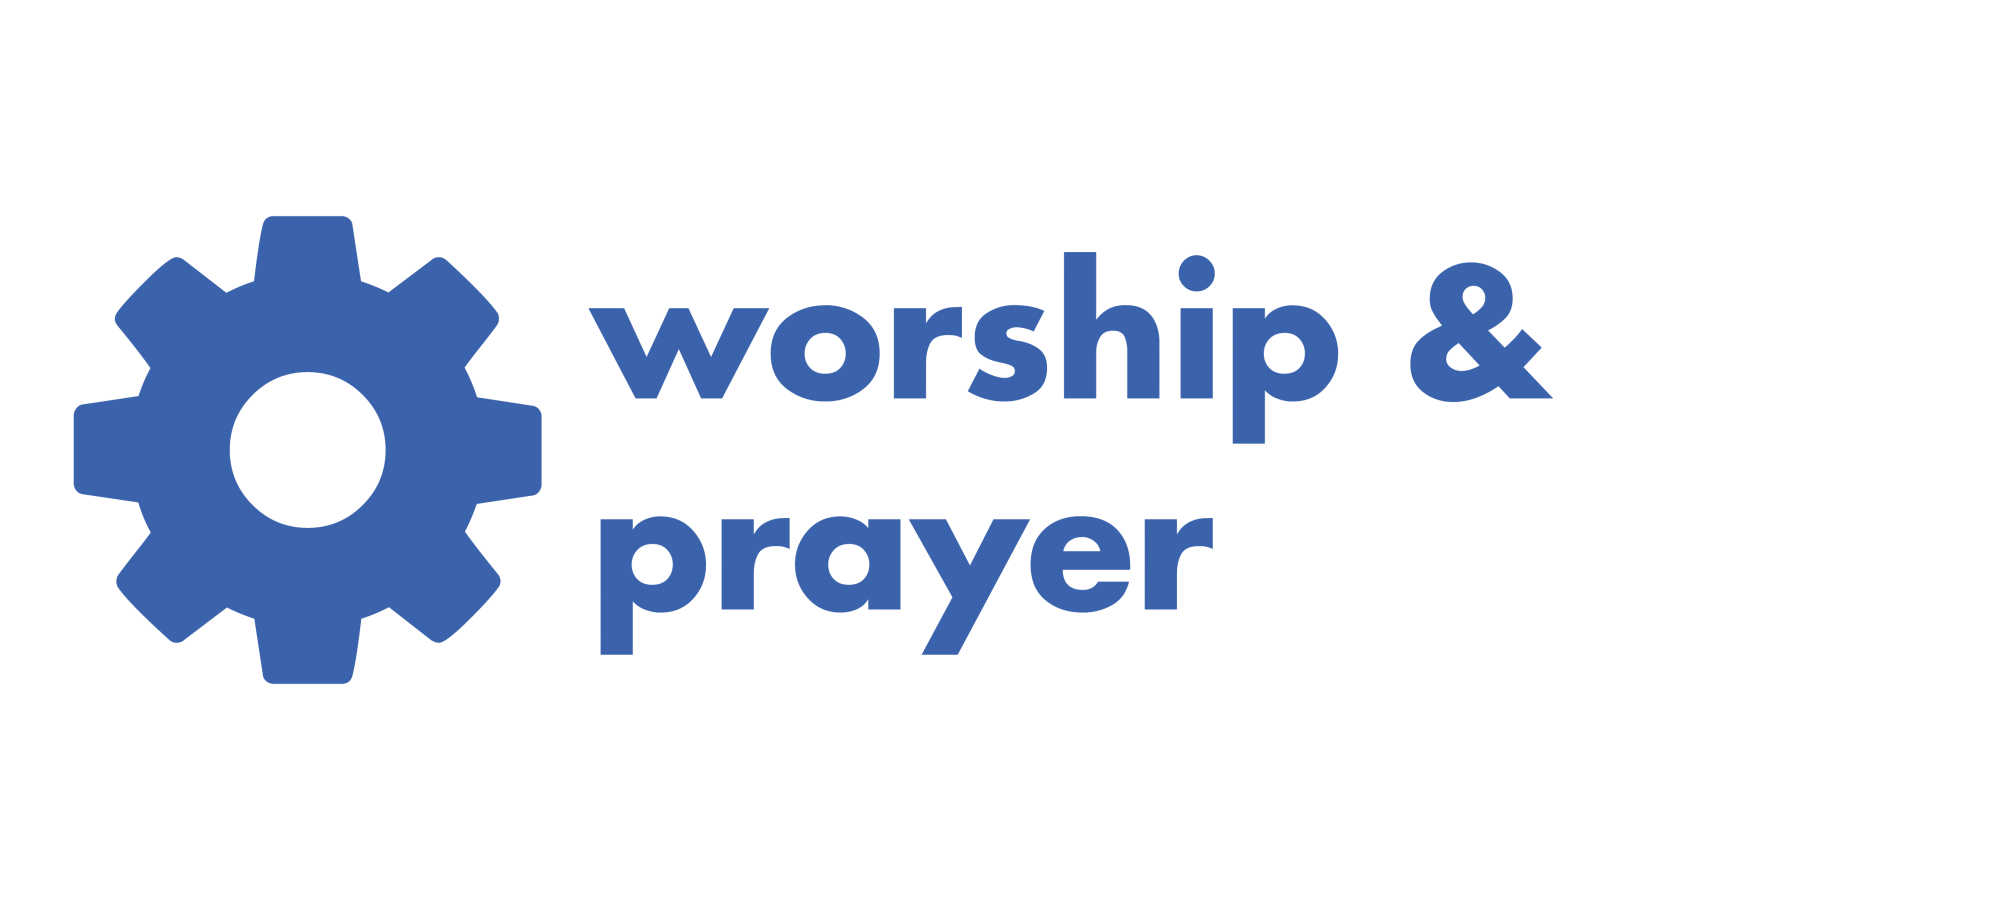 worship and prayer cog icon